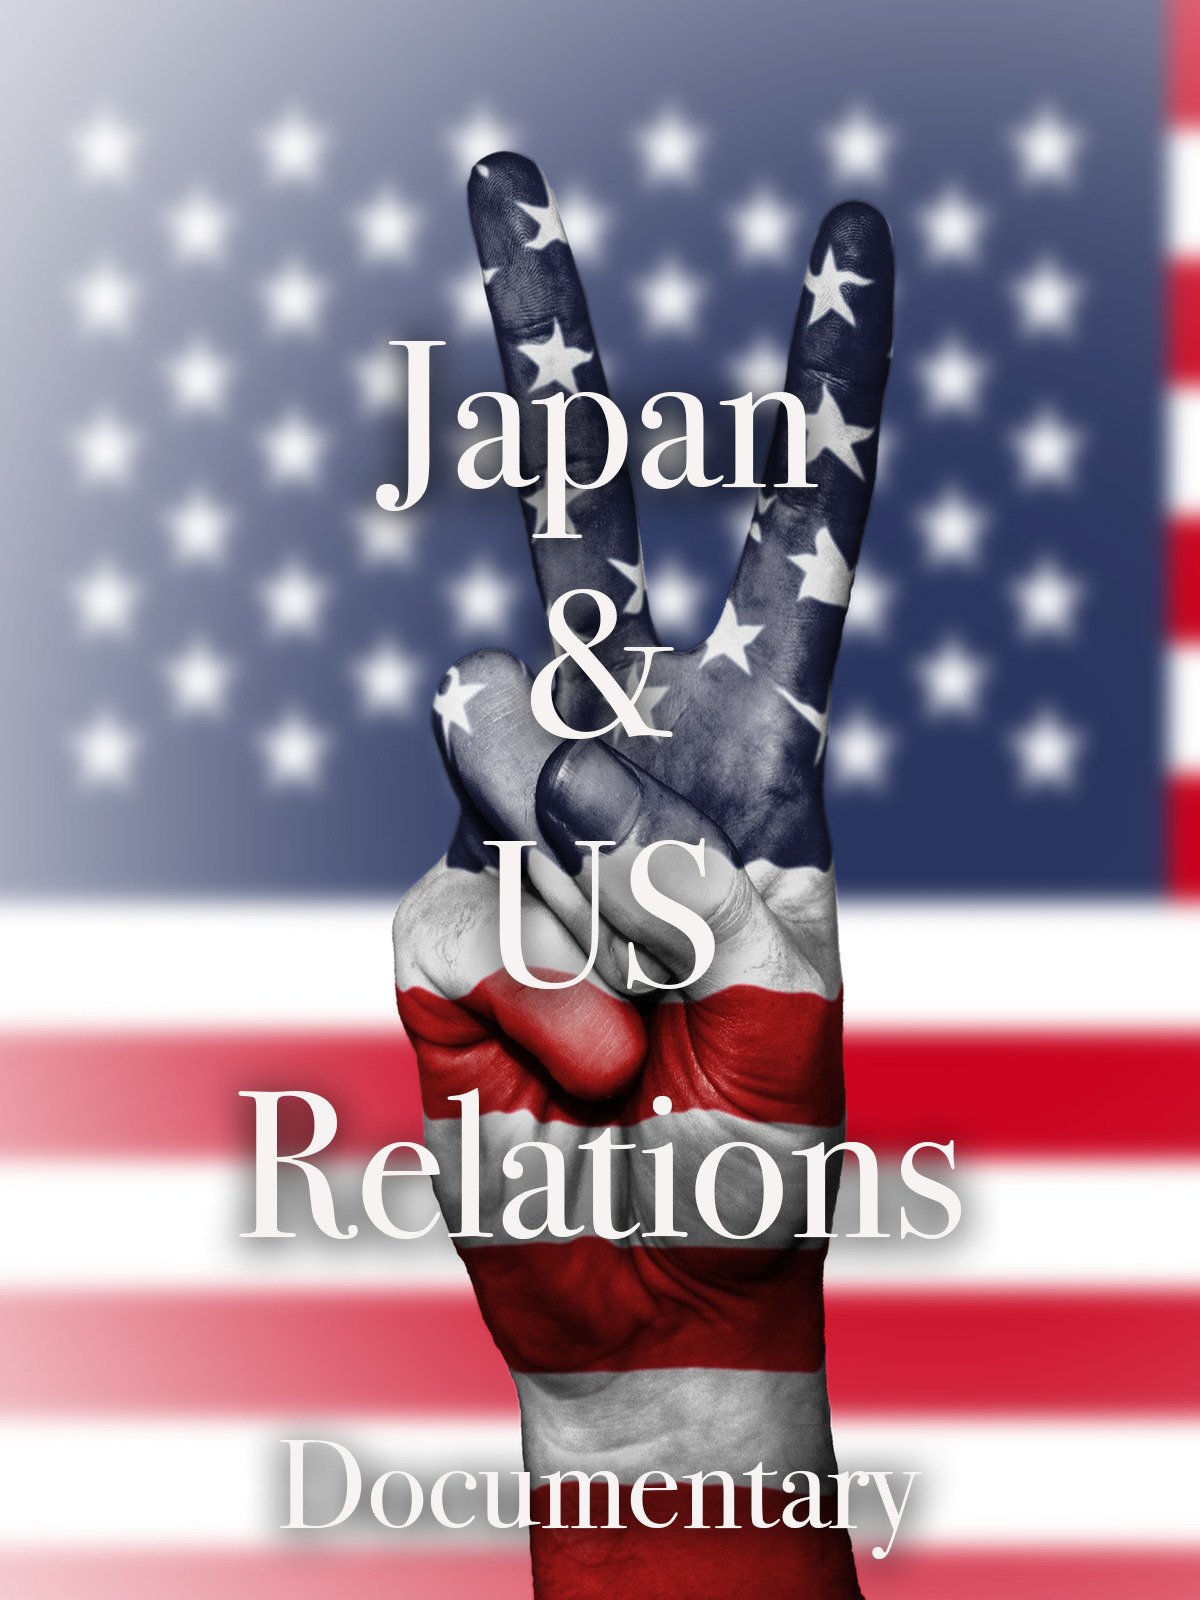 Japan & US Relations Documentary